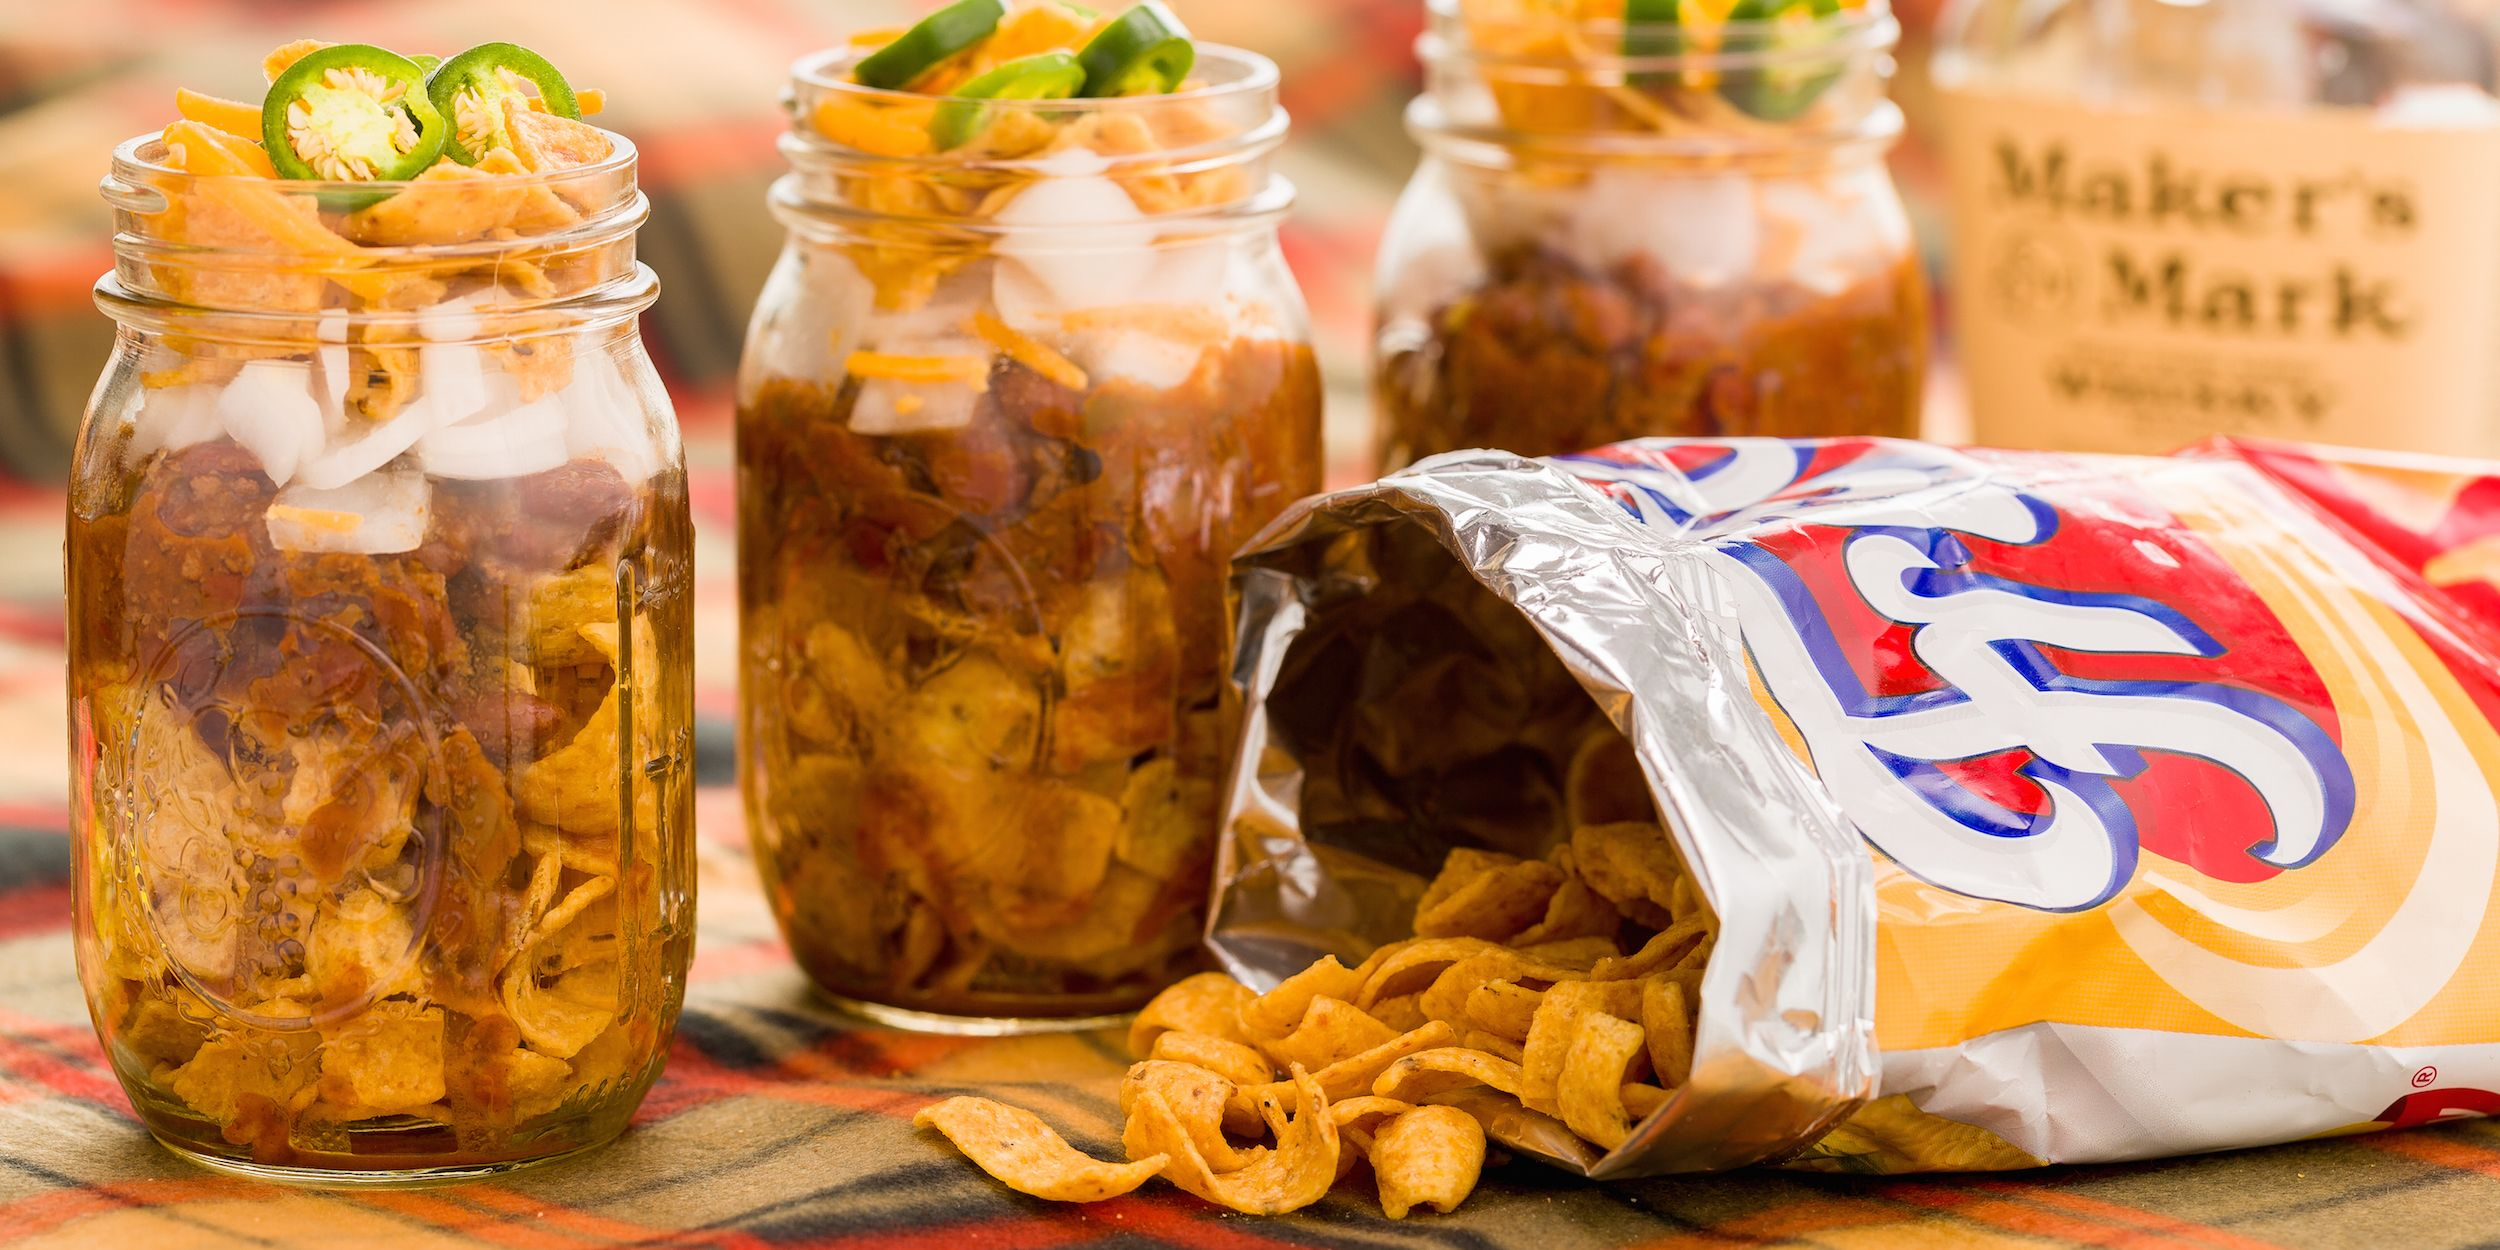 10 Easy Tailgate Food Ideas To Make In Mason Jars Tailgating Recipes Delish Com